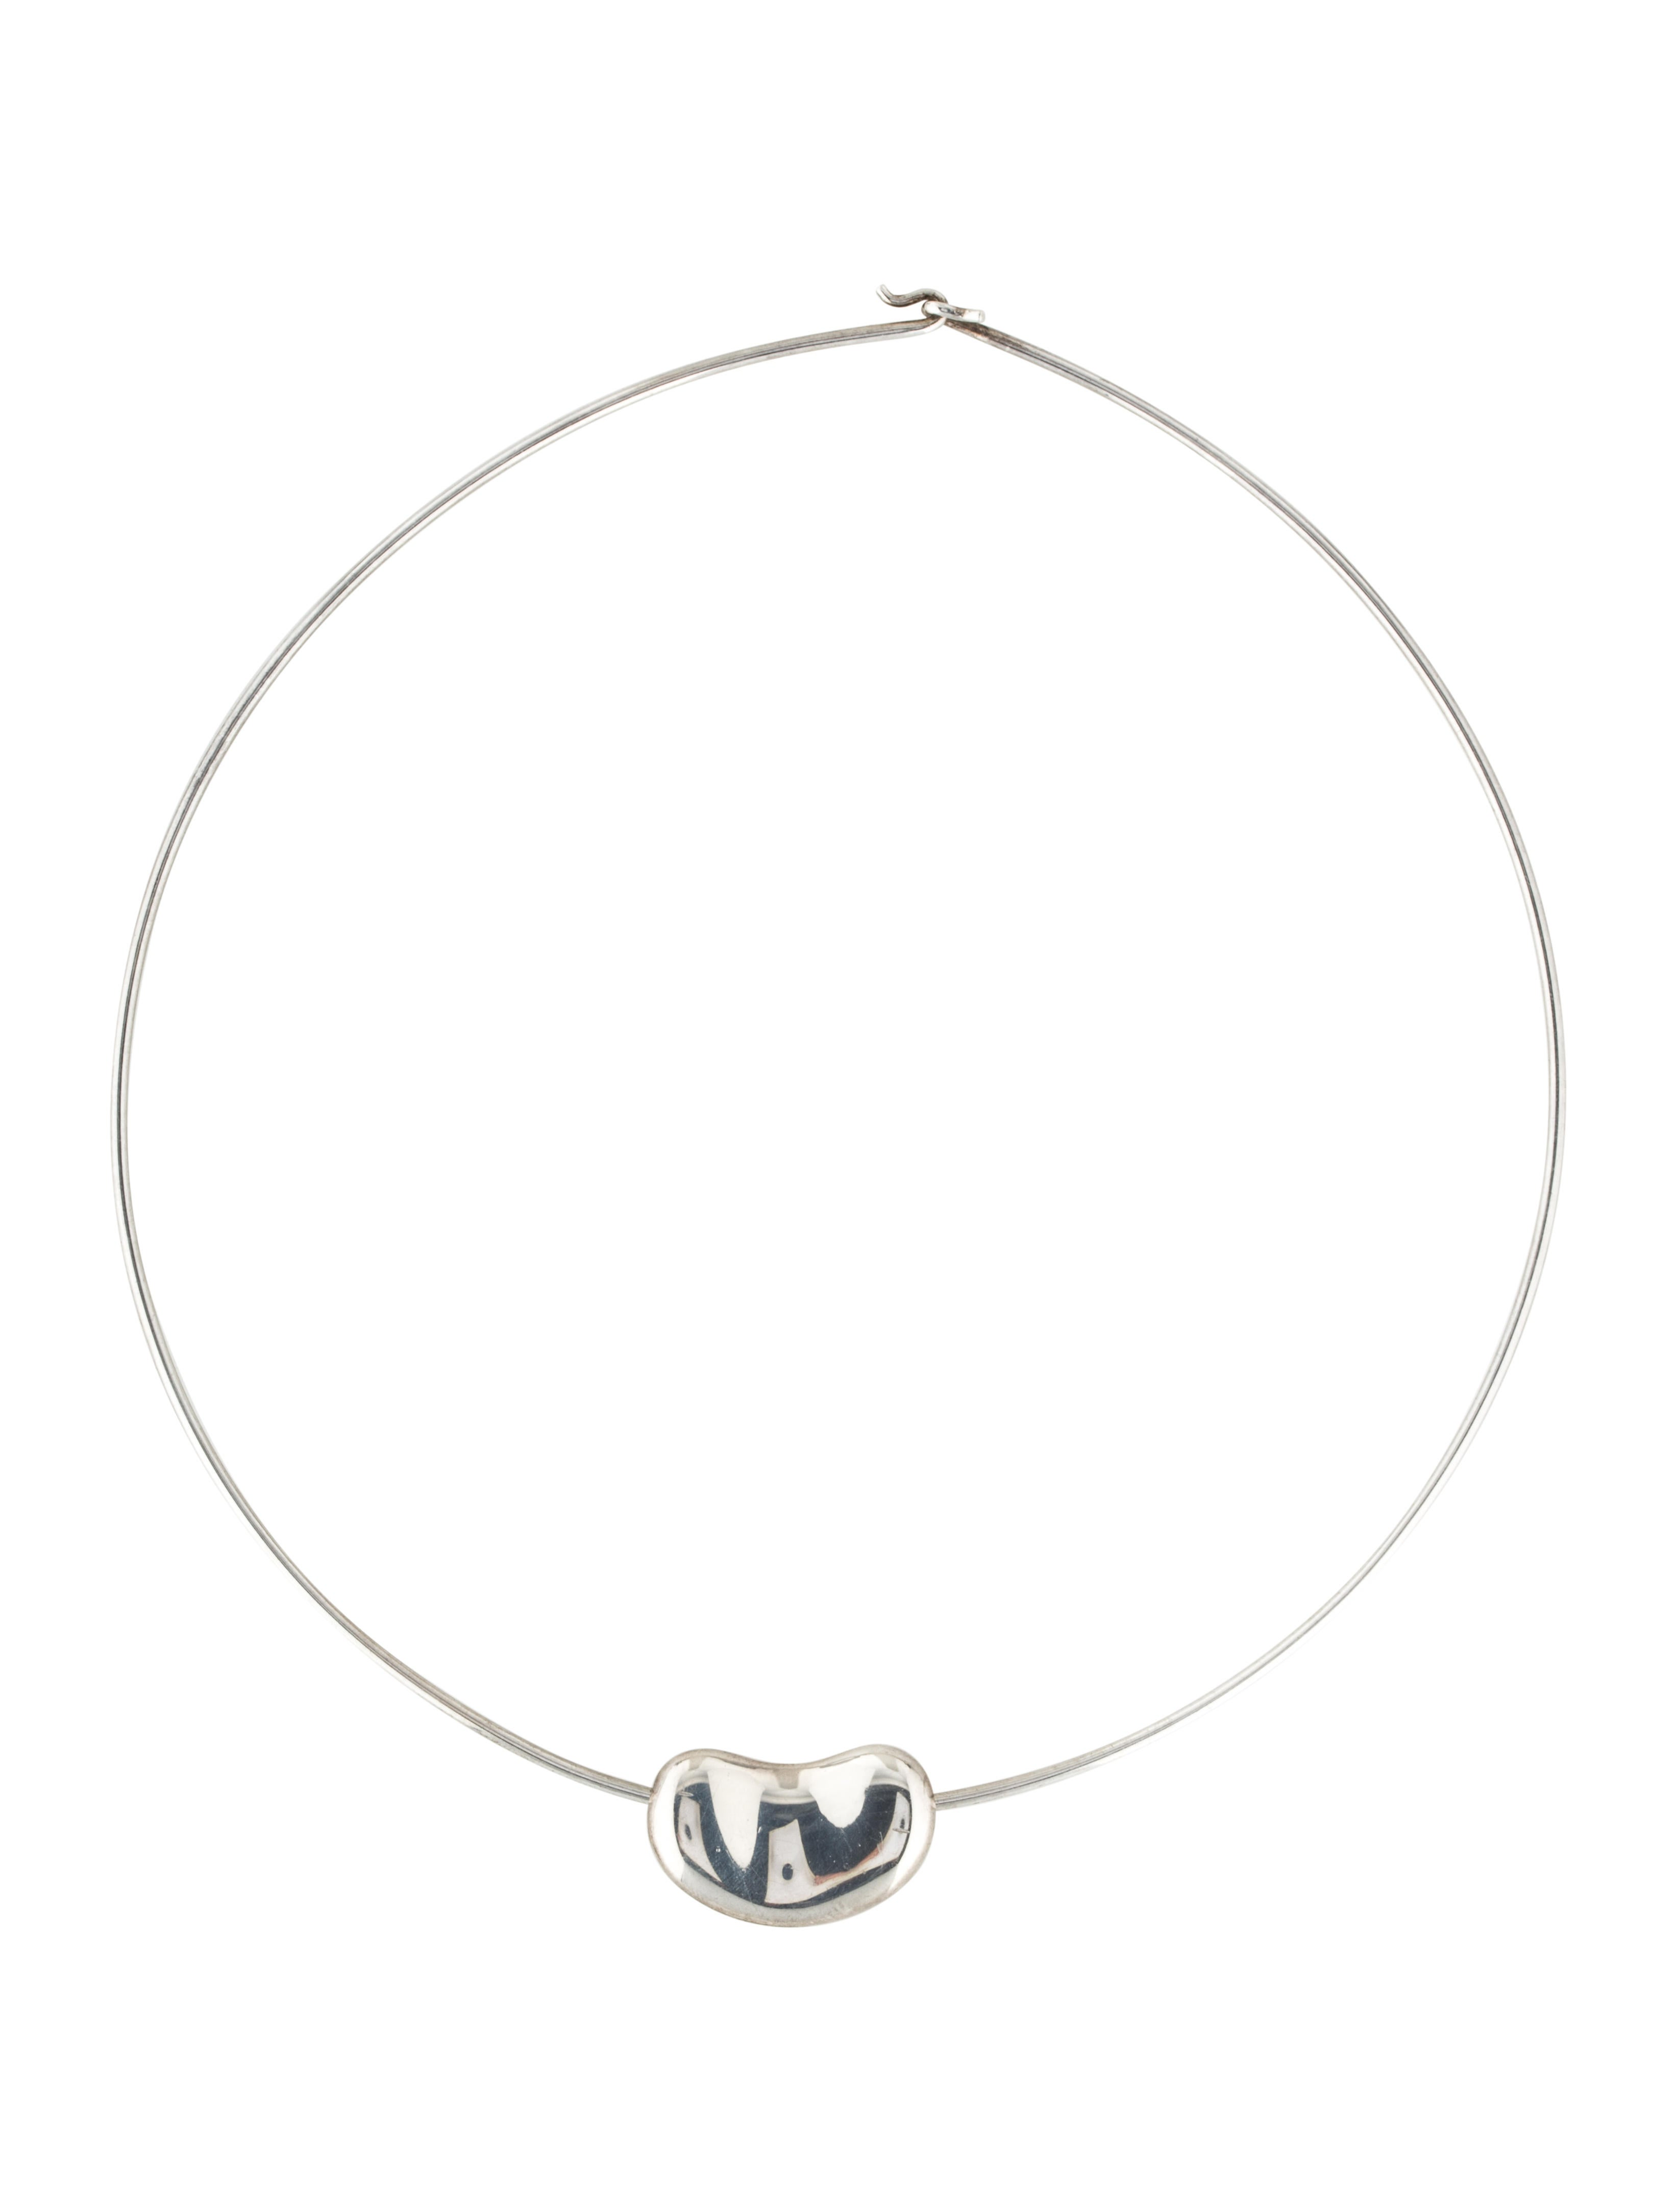 Tiffany & Co. Bean Wire Necklace - Necklaces - TIF53446 | The RealReal